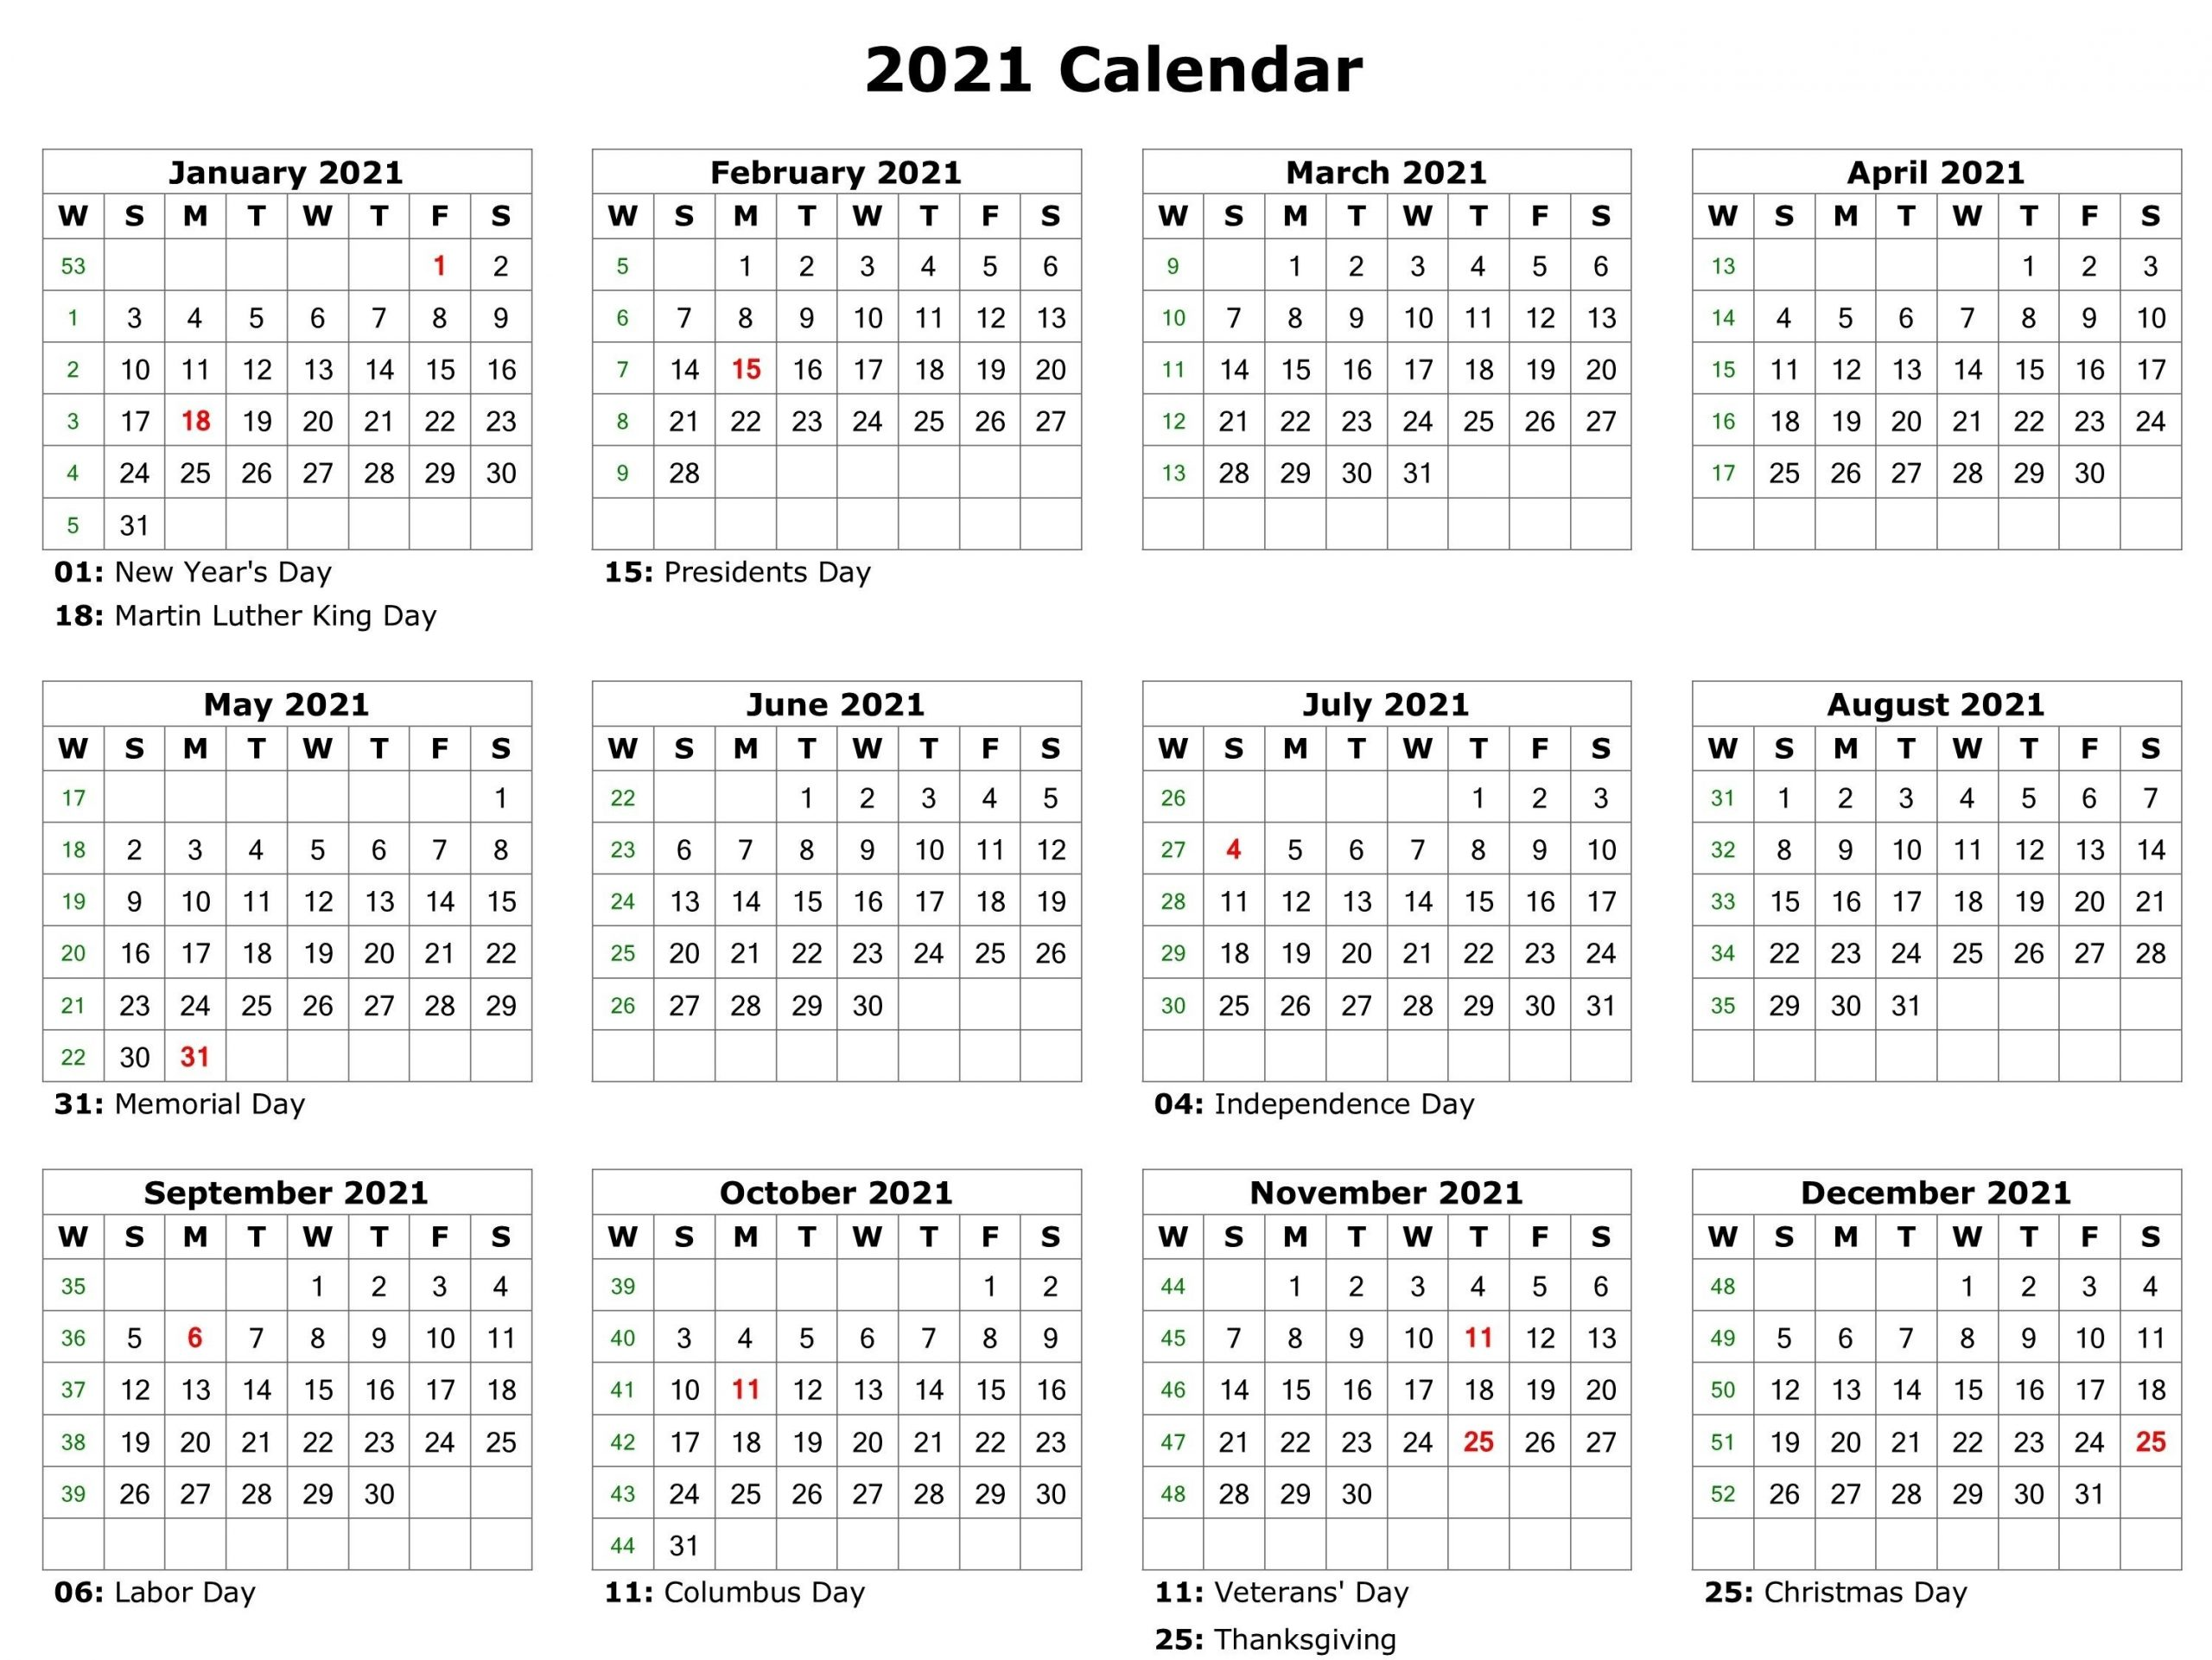 2021 Holidays - Free Download Printable Calendar Templates-2021 Print Free Calendars Without Downloading